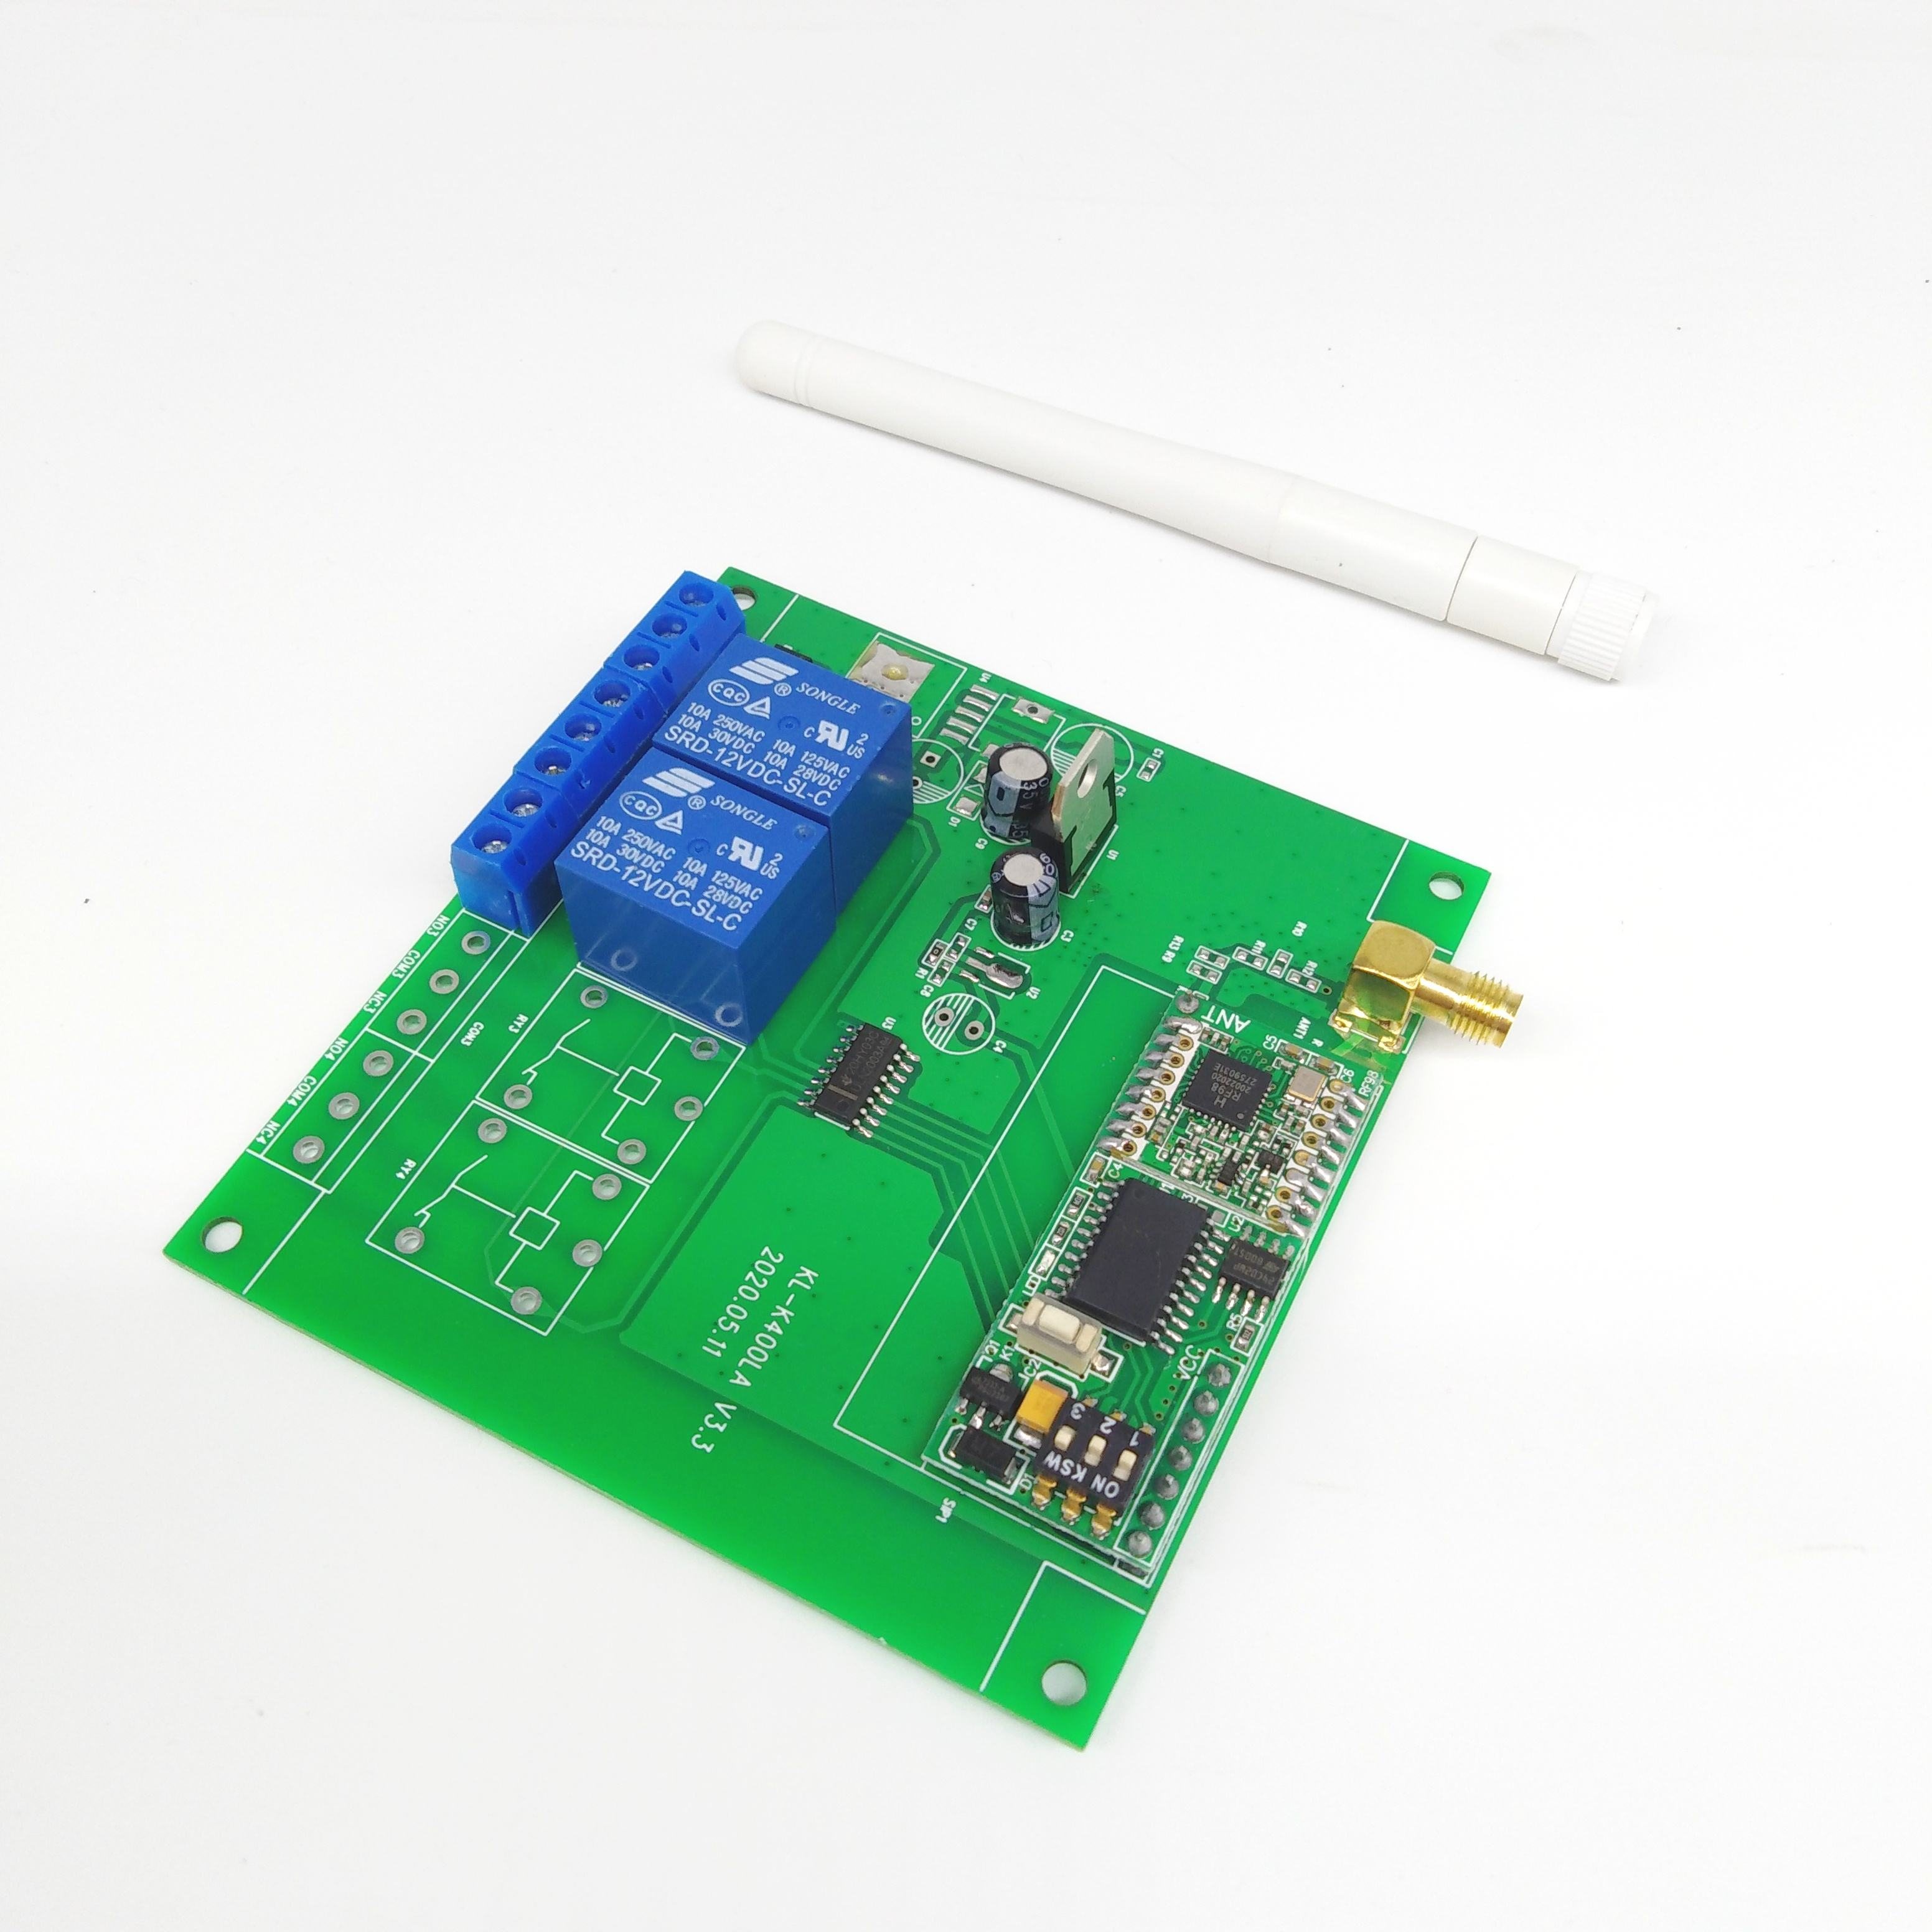 868MHzワイヤレスTwo方法Relay Board LORA RF RemoteコントローラKL-K400LA-2ch